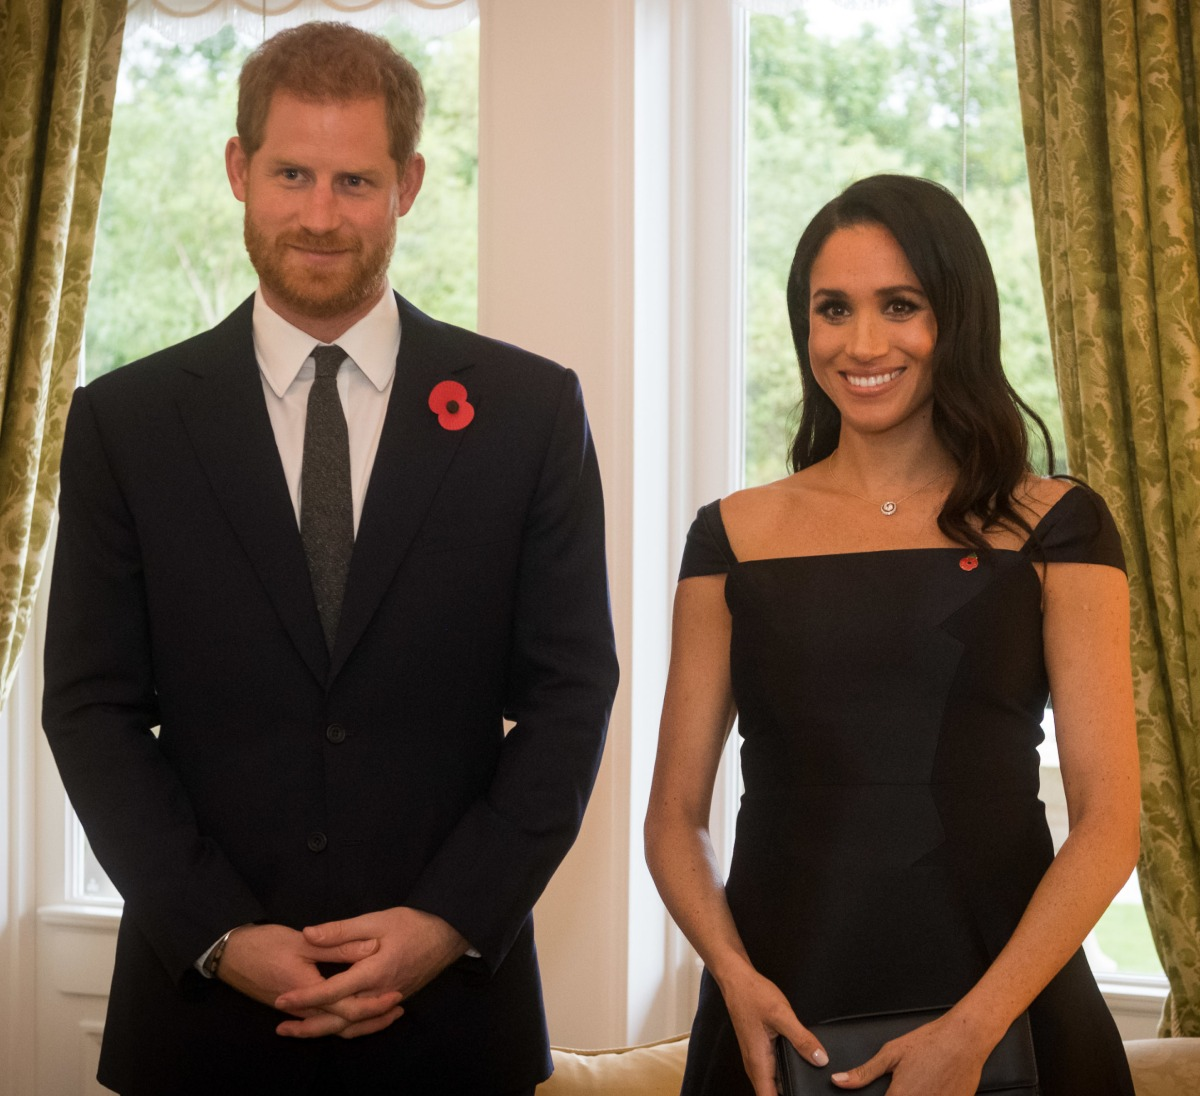 The Sussexes are going solo